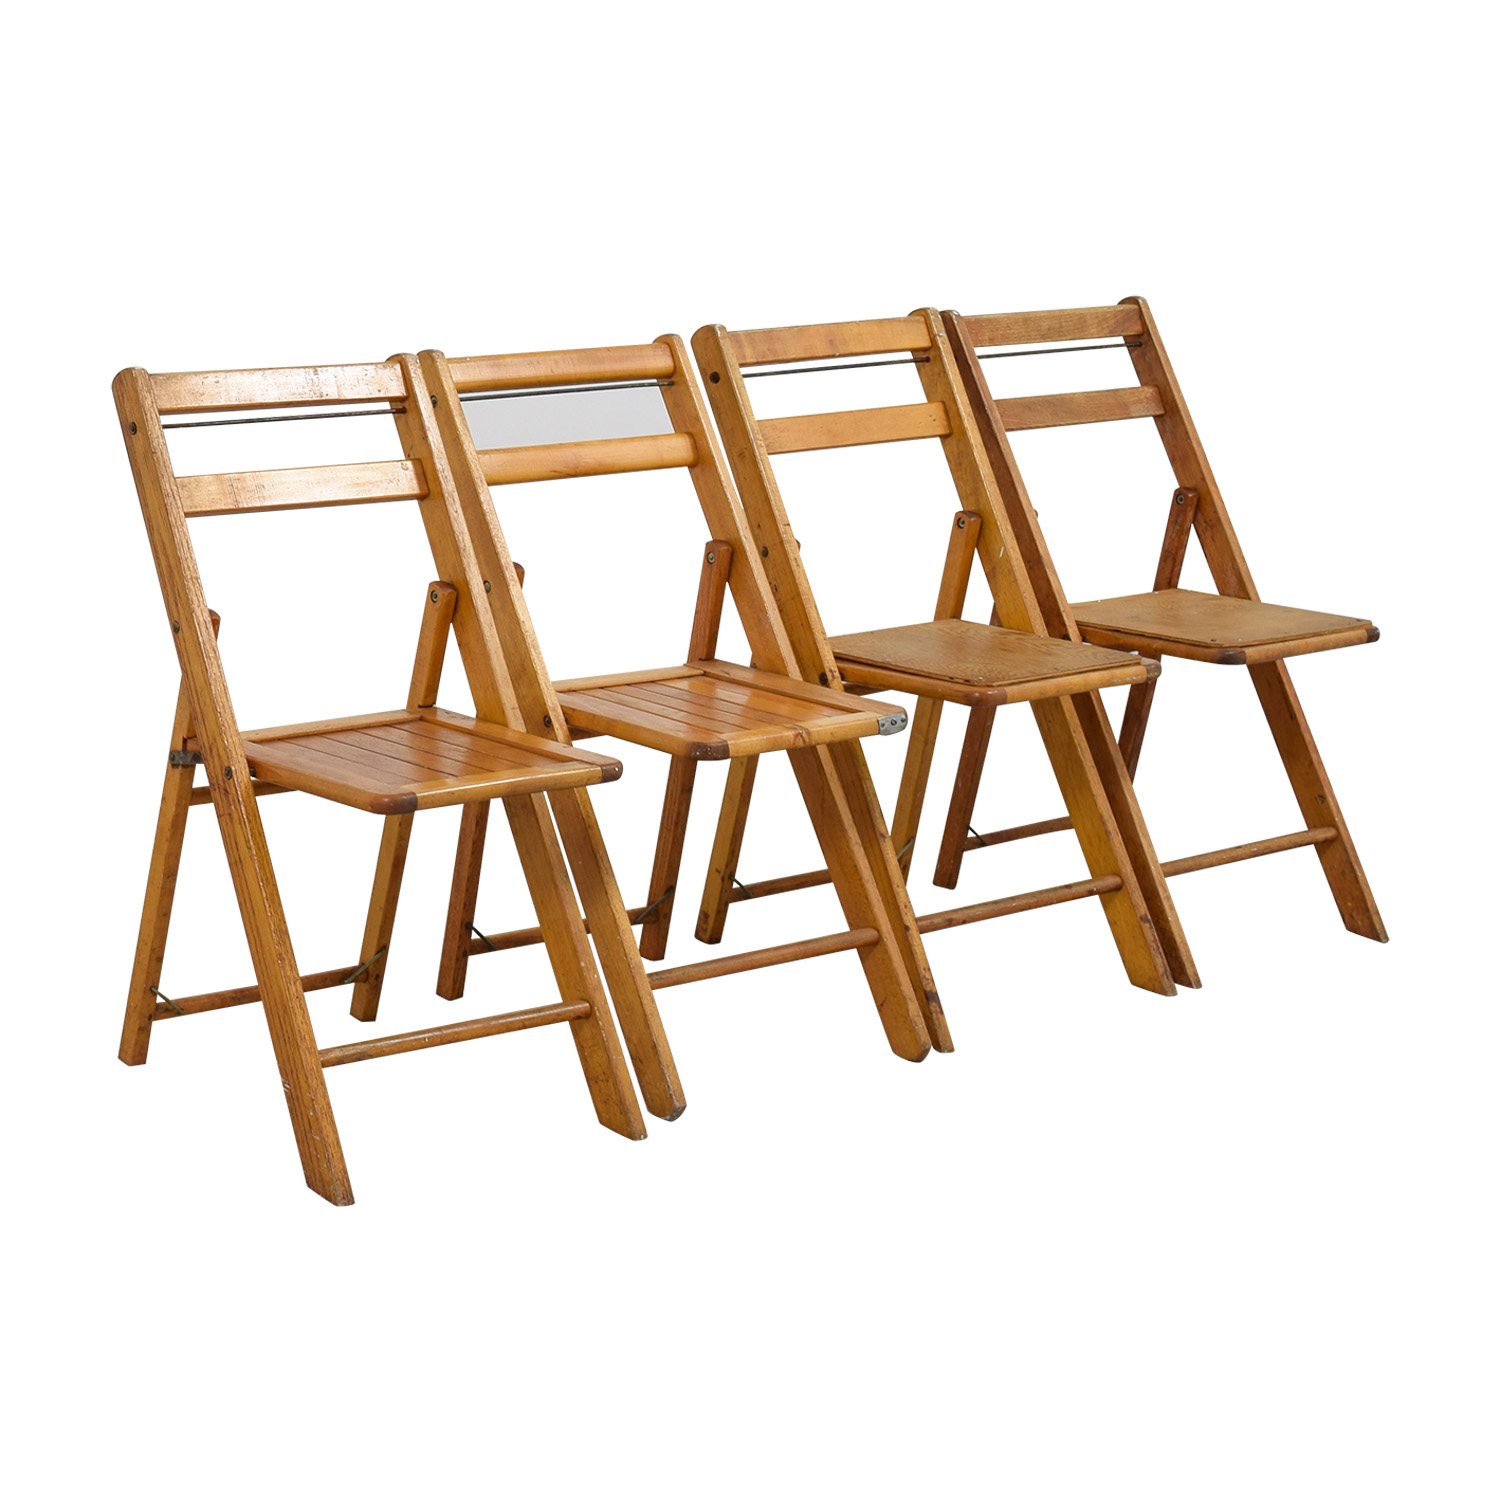 Wood Folding Chairs ~ Unique used folding chairs for sale rtty